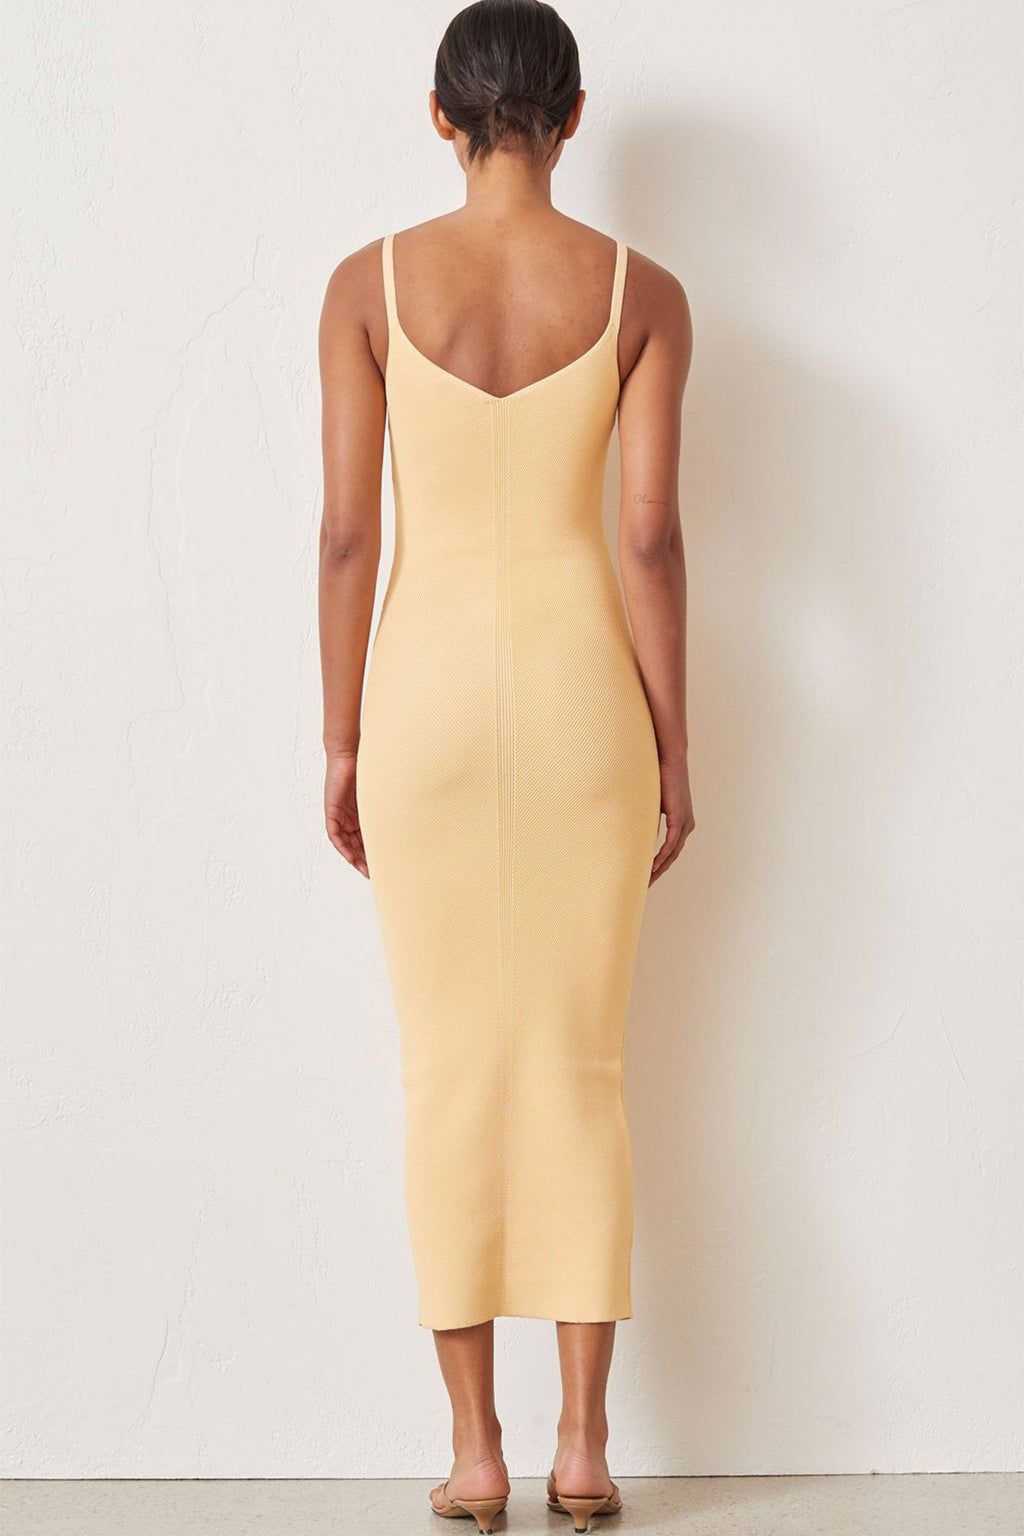 BEC + BRIDGE | Citrus Club Midi - Melon